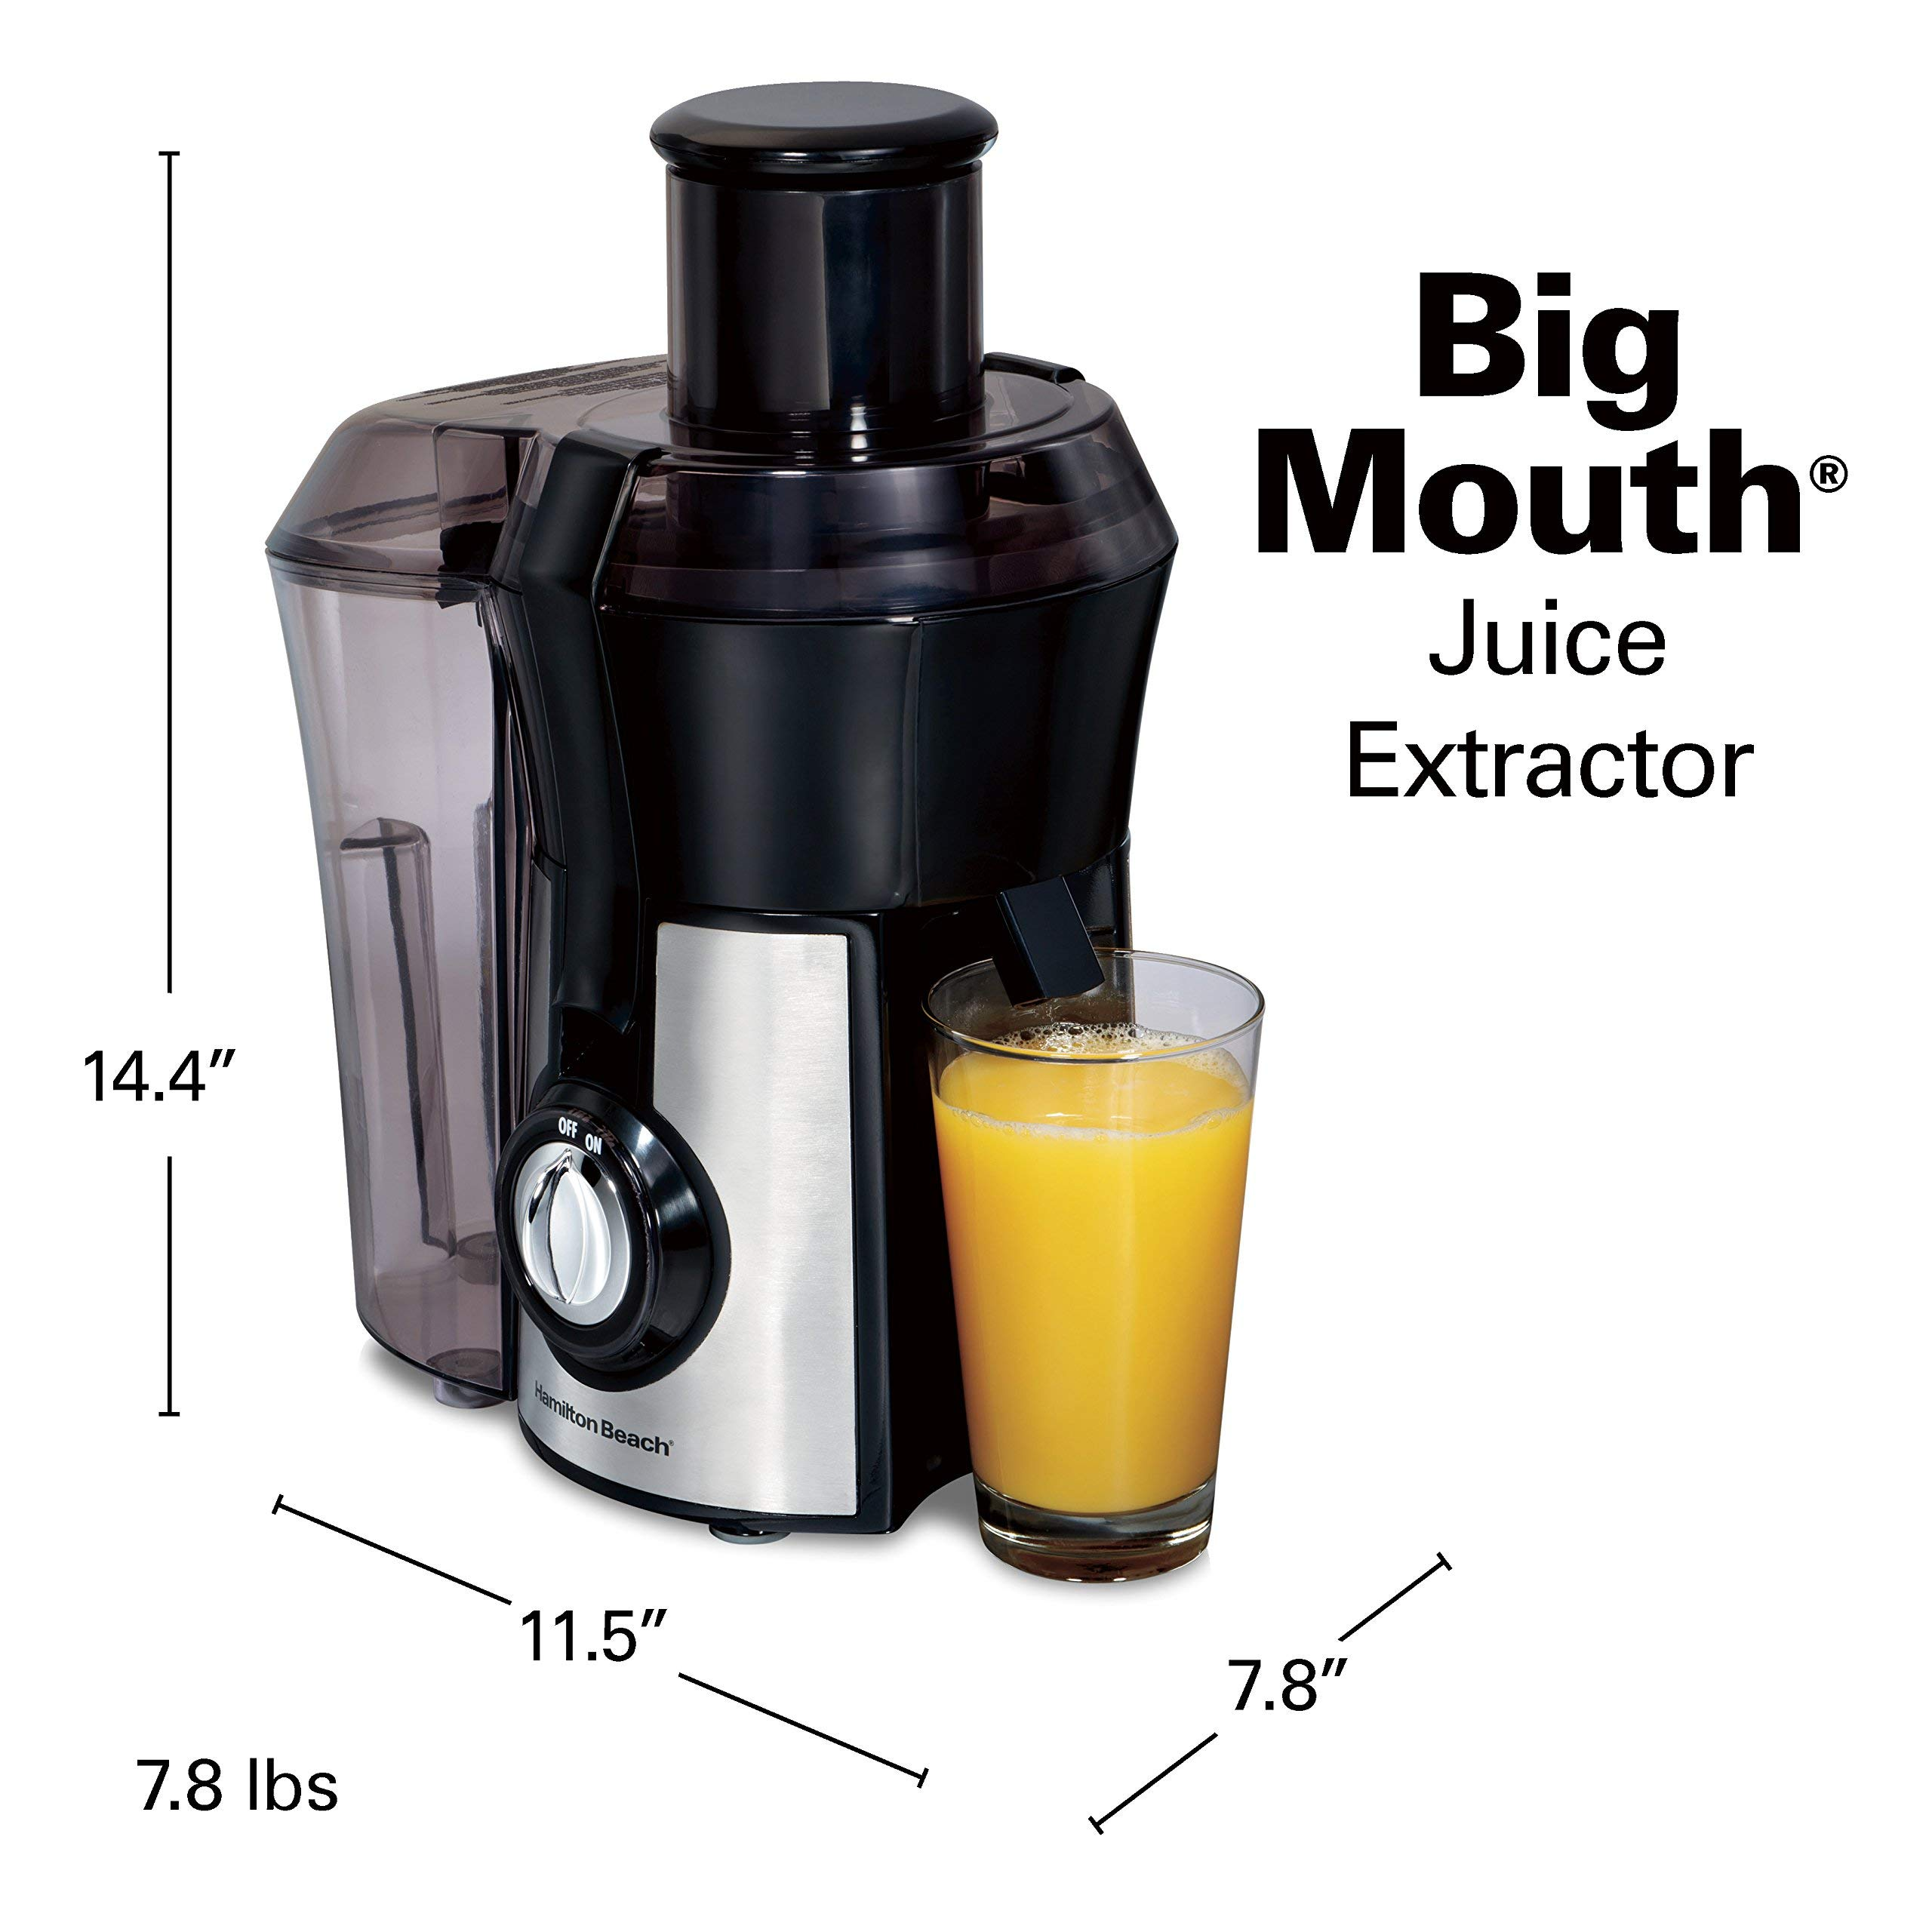 Hamilton Beach 040094922635 (67608A) Juicer, Electric, 800 Watt, Easy to Clean, BPA Free, Large, Silver (Renewed) by Hamilton Beach (Image #7)